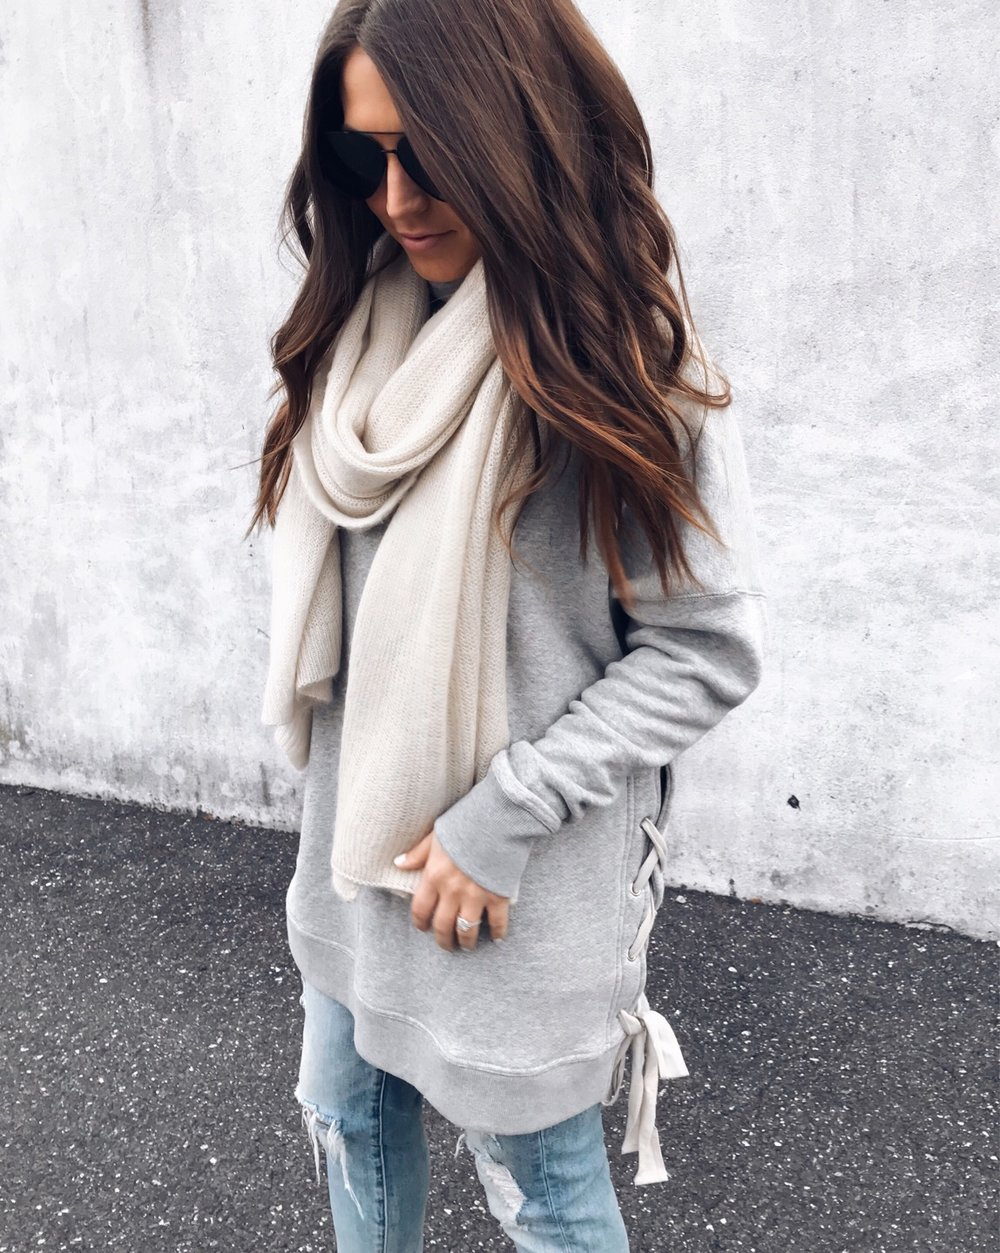 fall fashion, fall outfit idea, fall outfit inspiration, free people outfit, sweater weather, outfit of the day